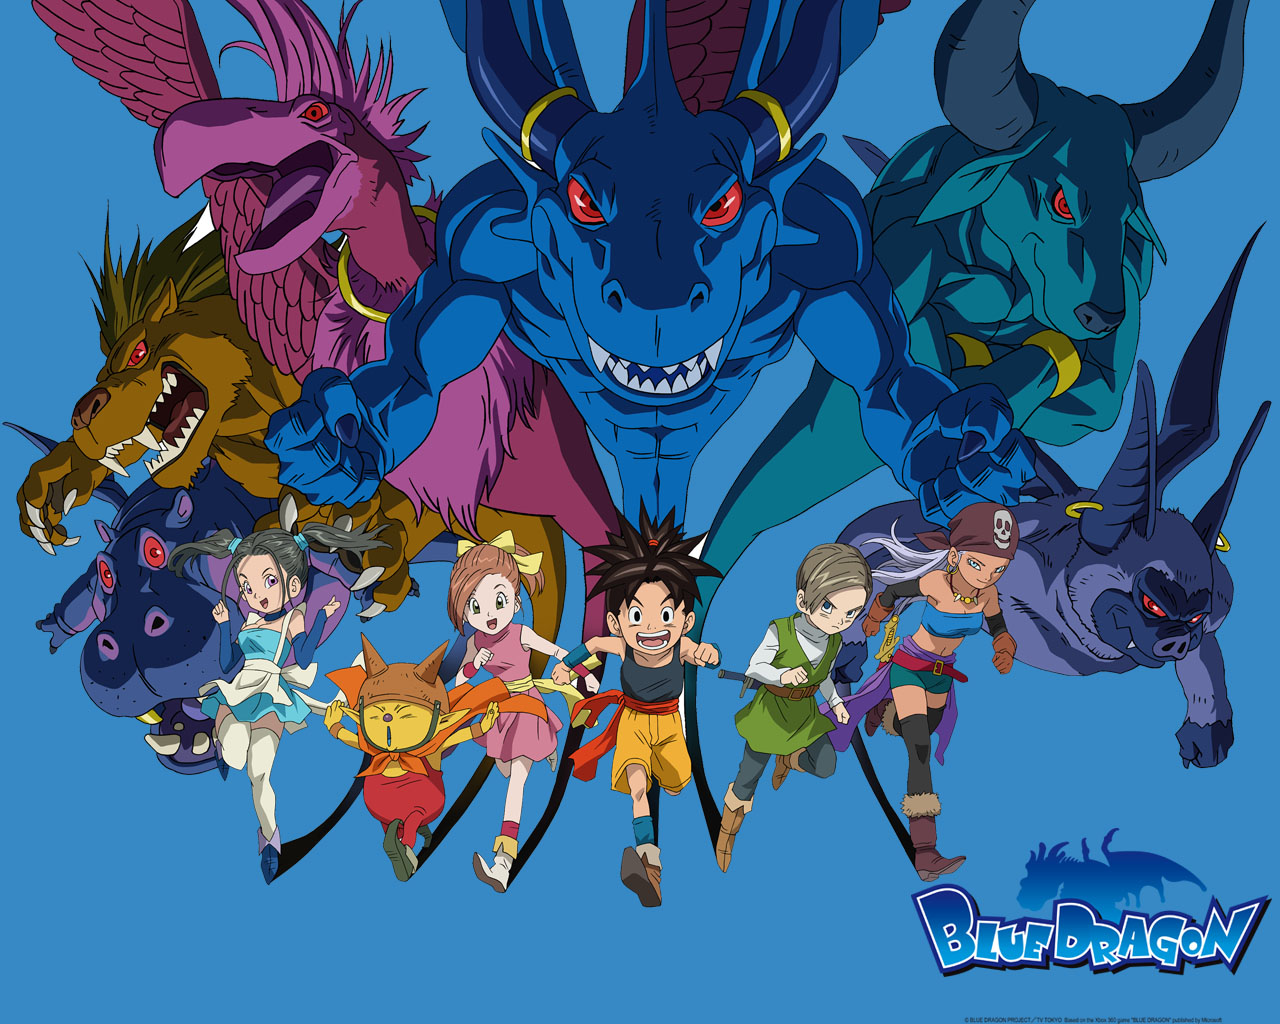 blue-dragon-groupe-1280x1024.jpg